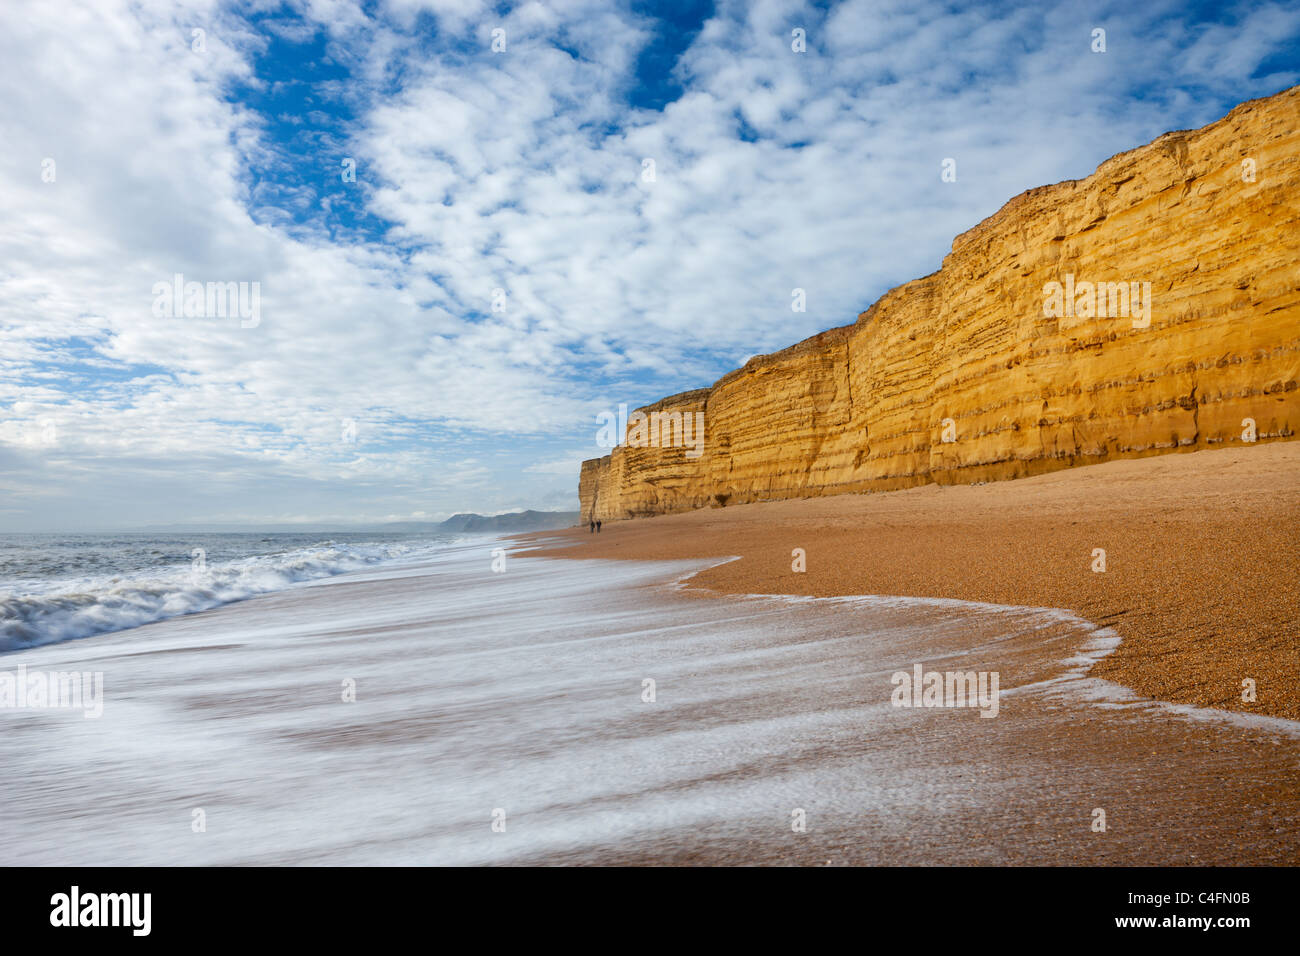 Waves wash clean Hive Beach backed by towering sandstone cliffs, Burton Bradstock, Dorset, England. Winter (February) - Stock Image